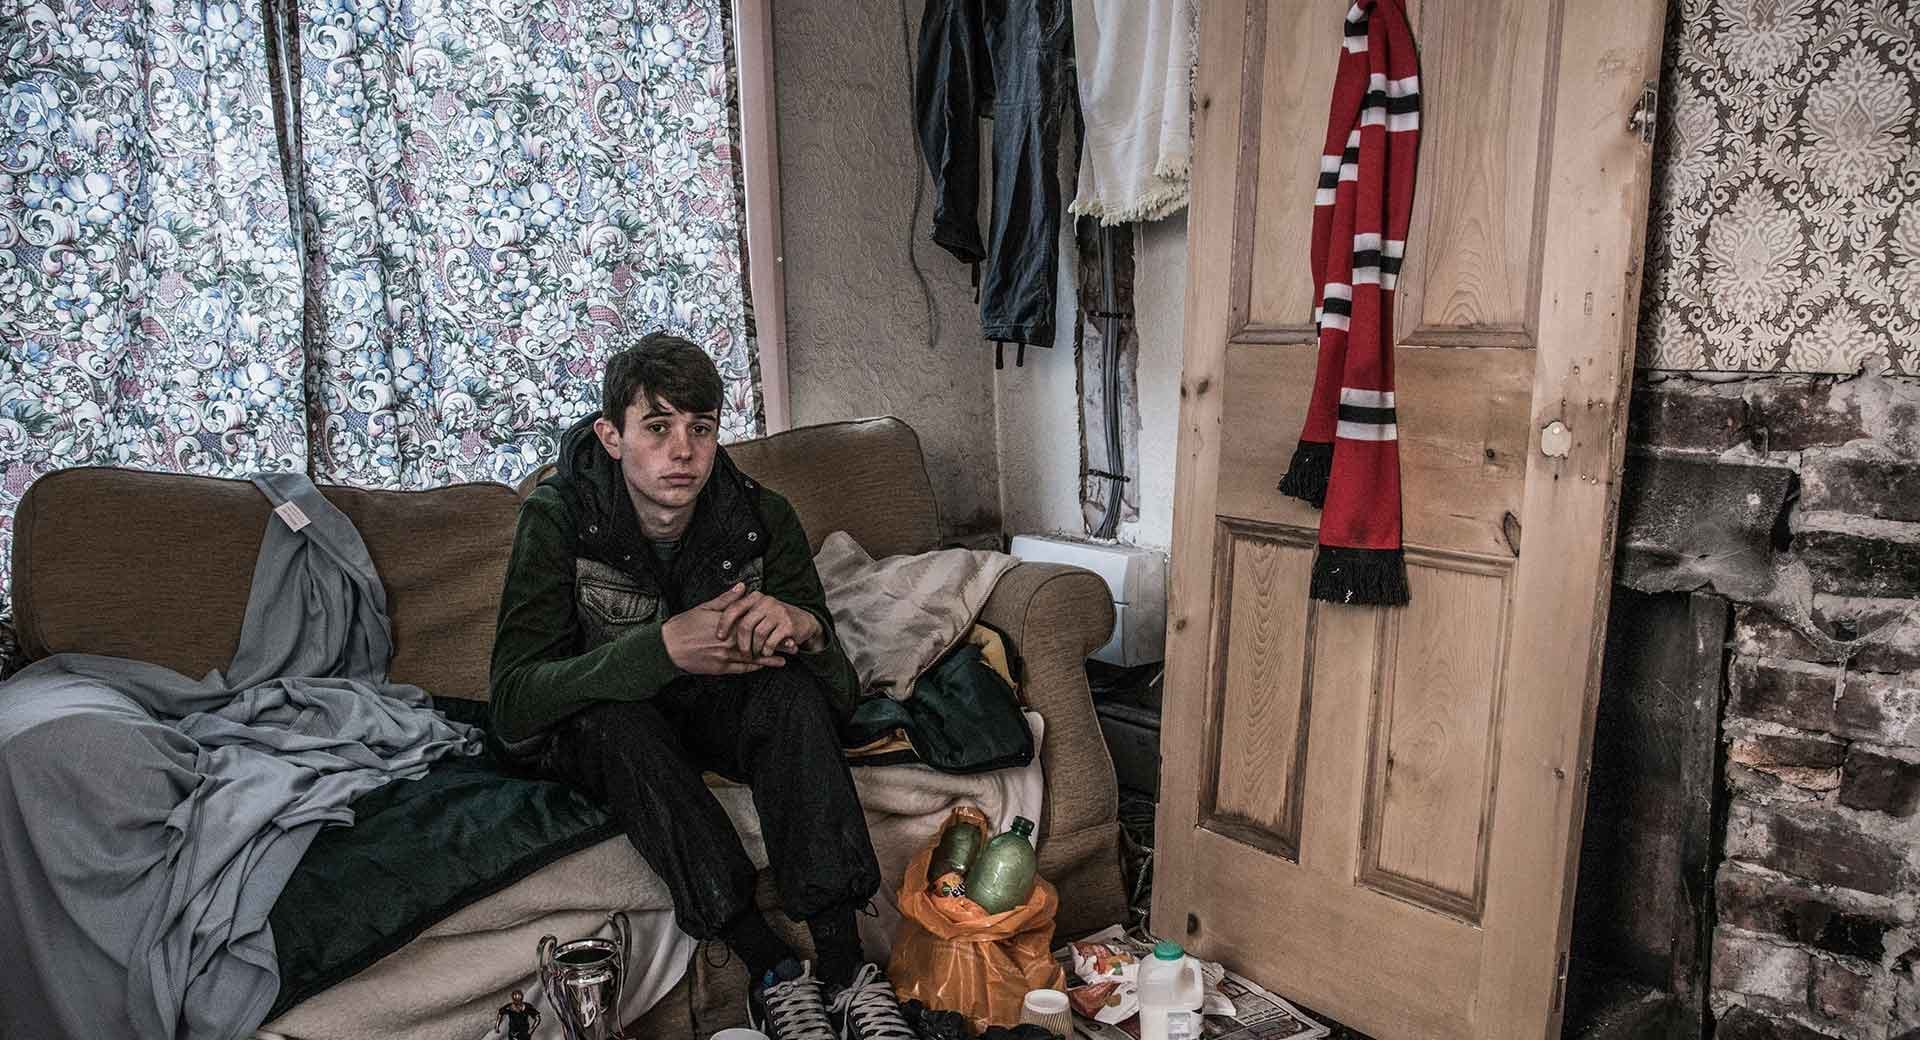 A young person sits in their front room. Add your name to Centrepoint's handraiser if you agree Universal Credit should not be making youth homelessness work.